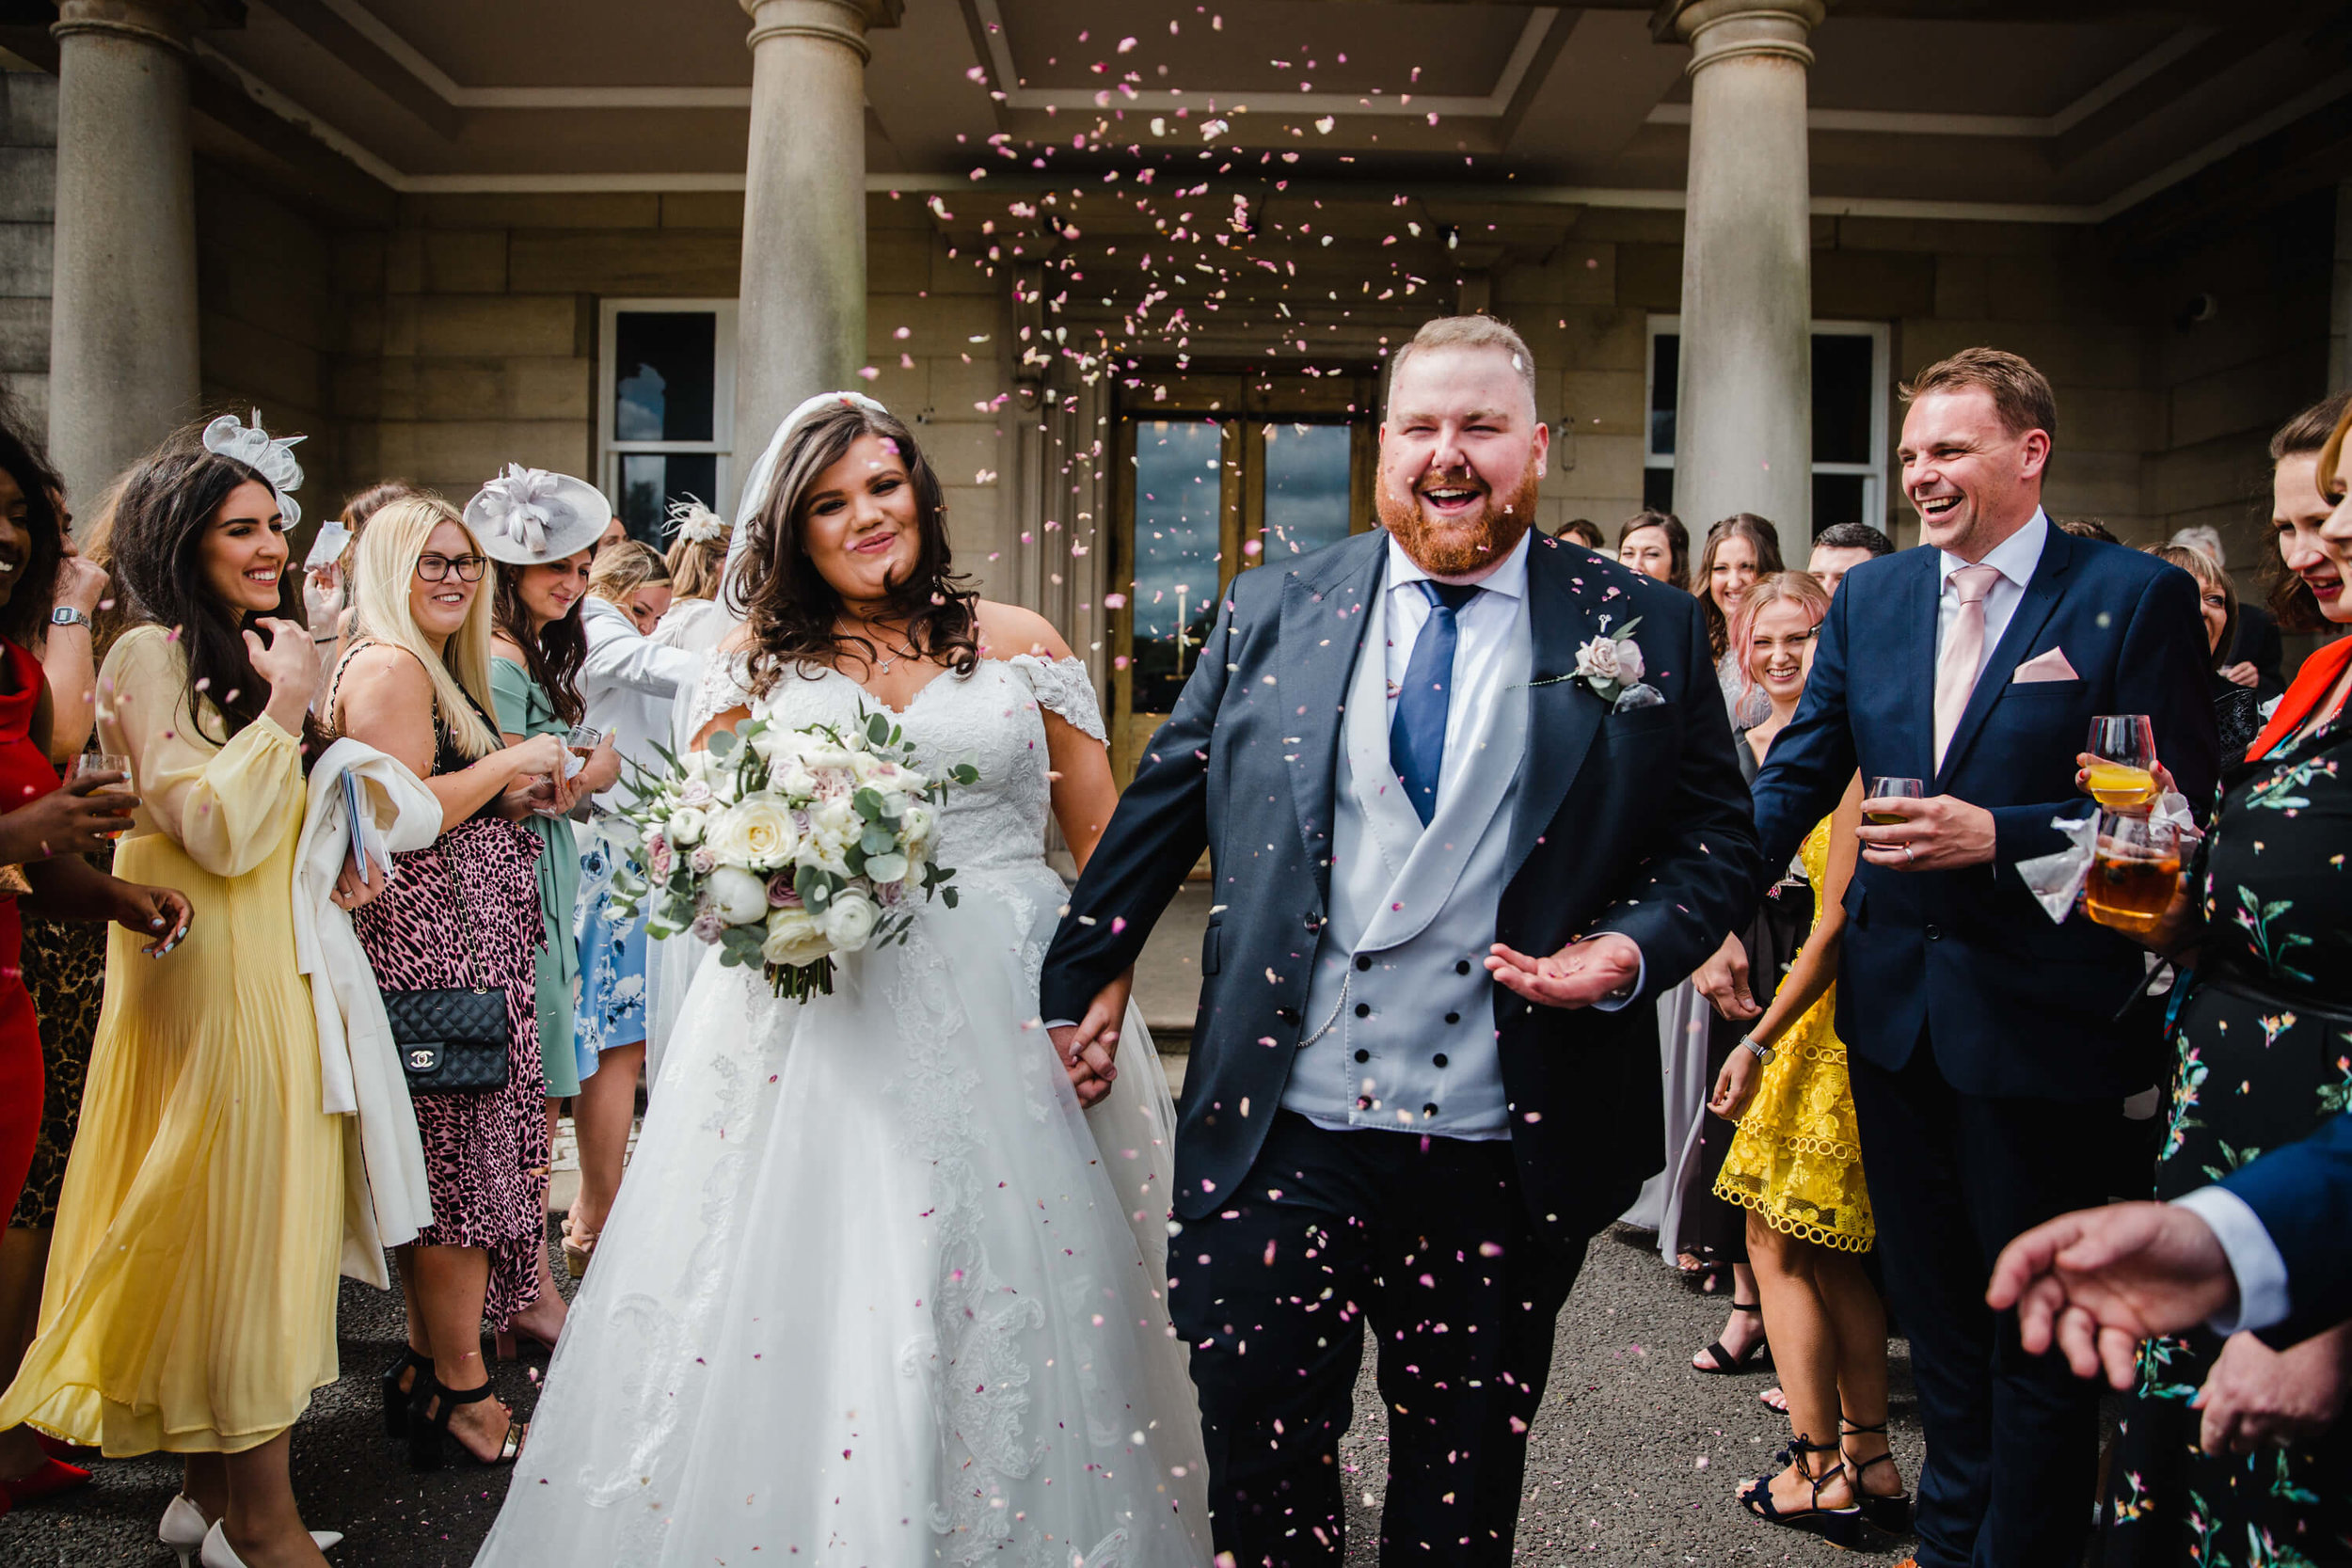 bride and groom run through confetti throwing from wedding party